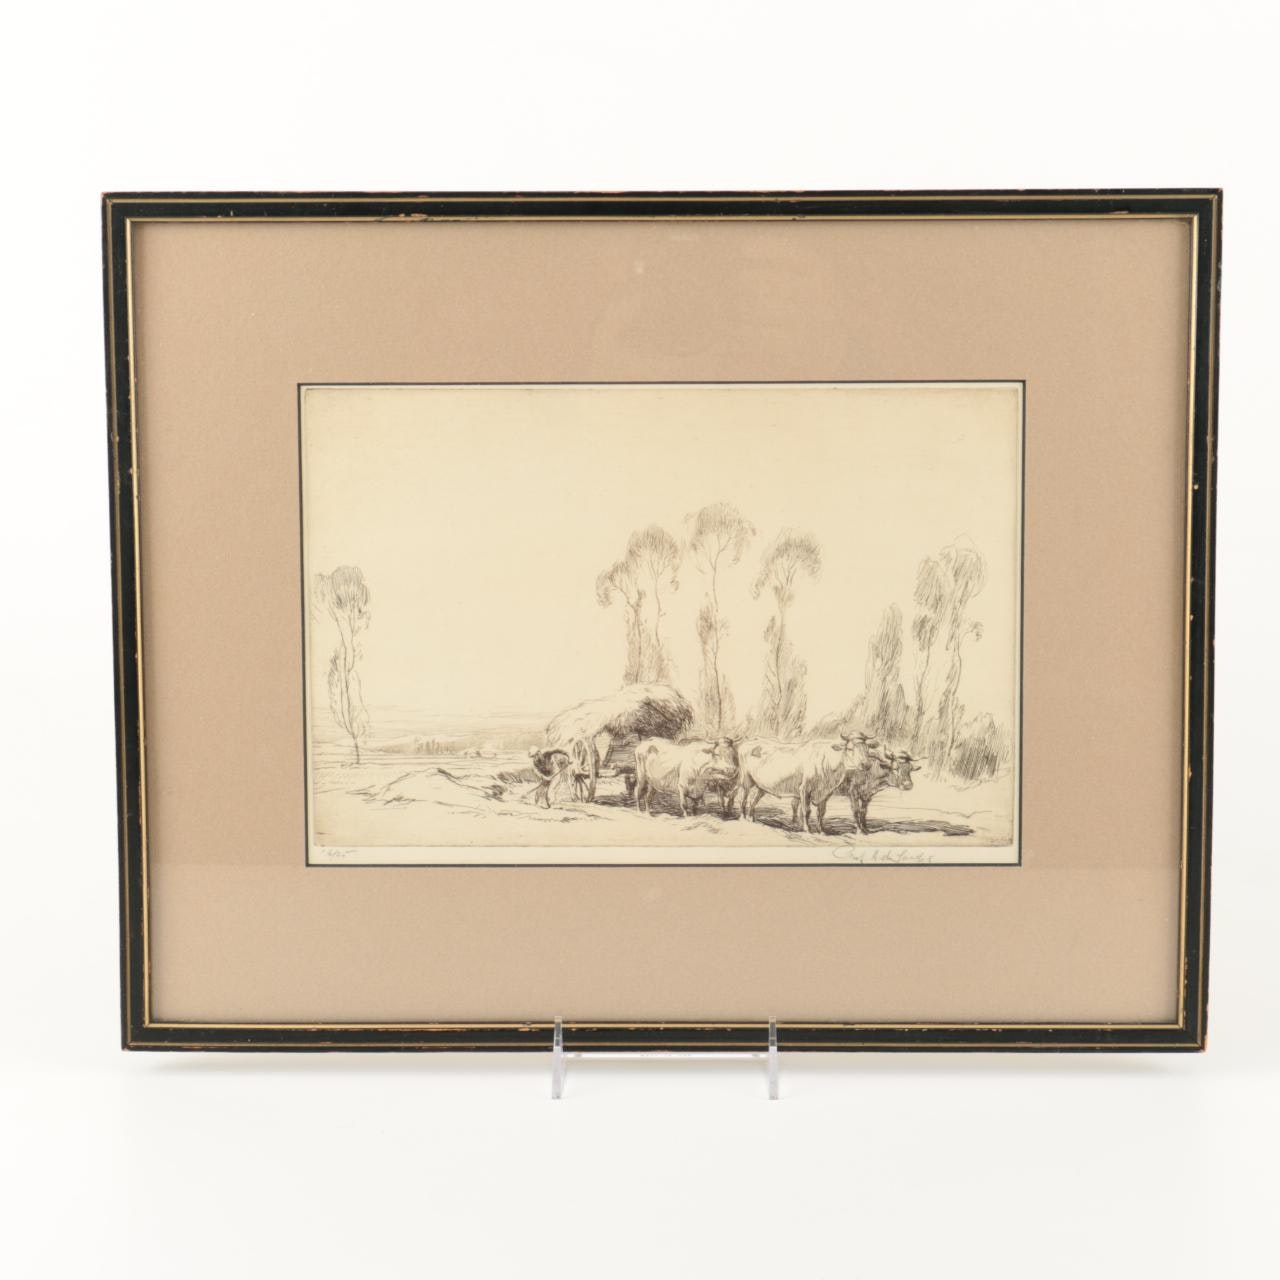 Framed and Signed Etching of a Hay Carriage